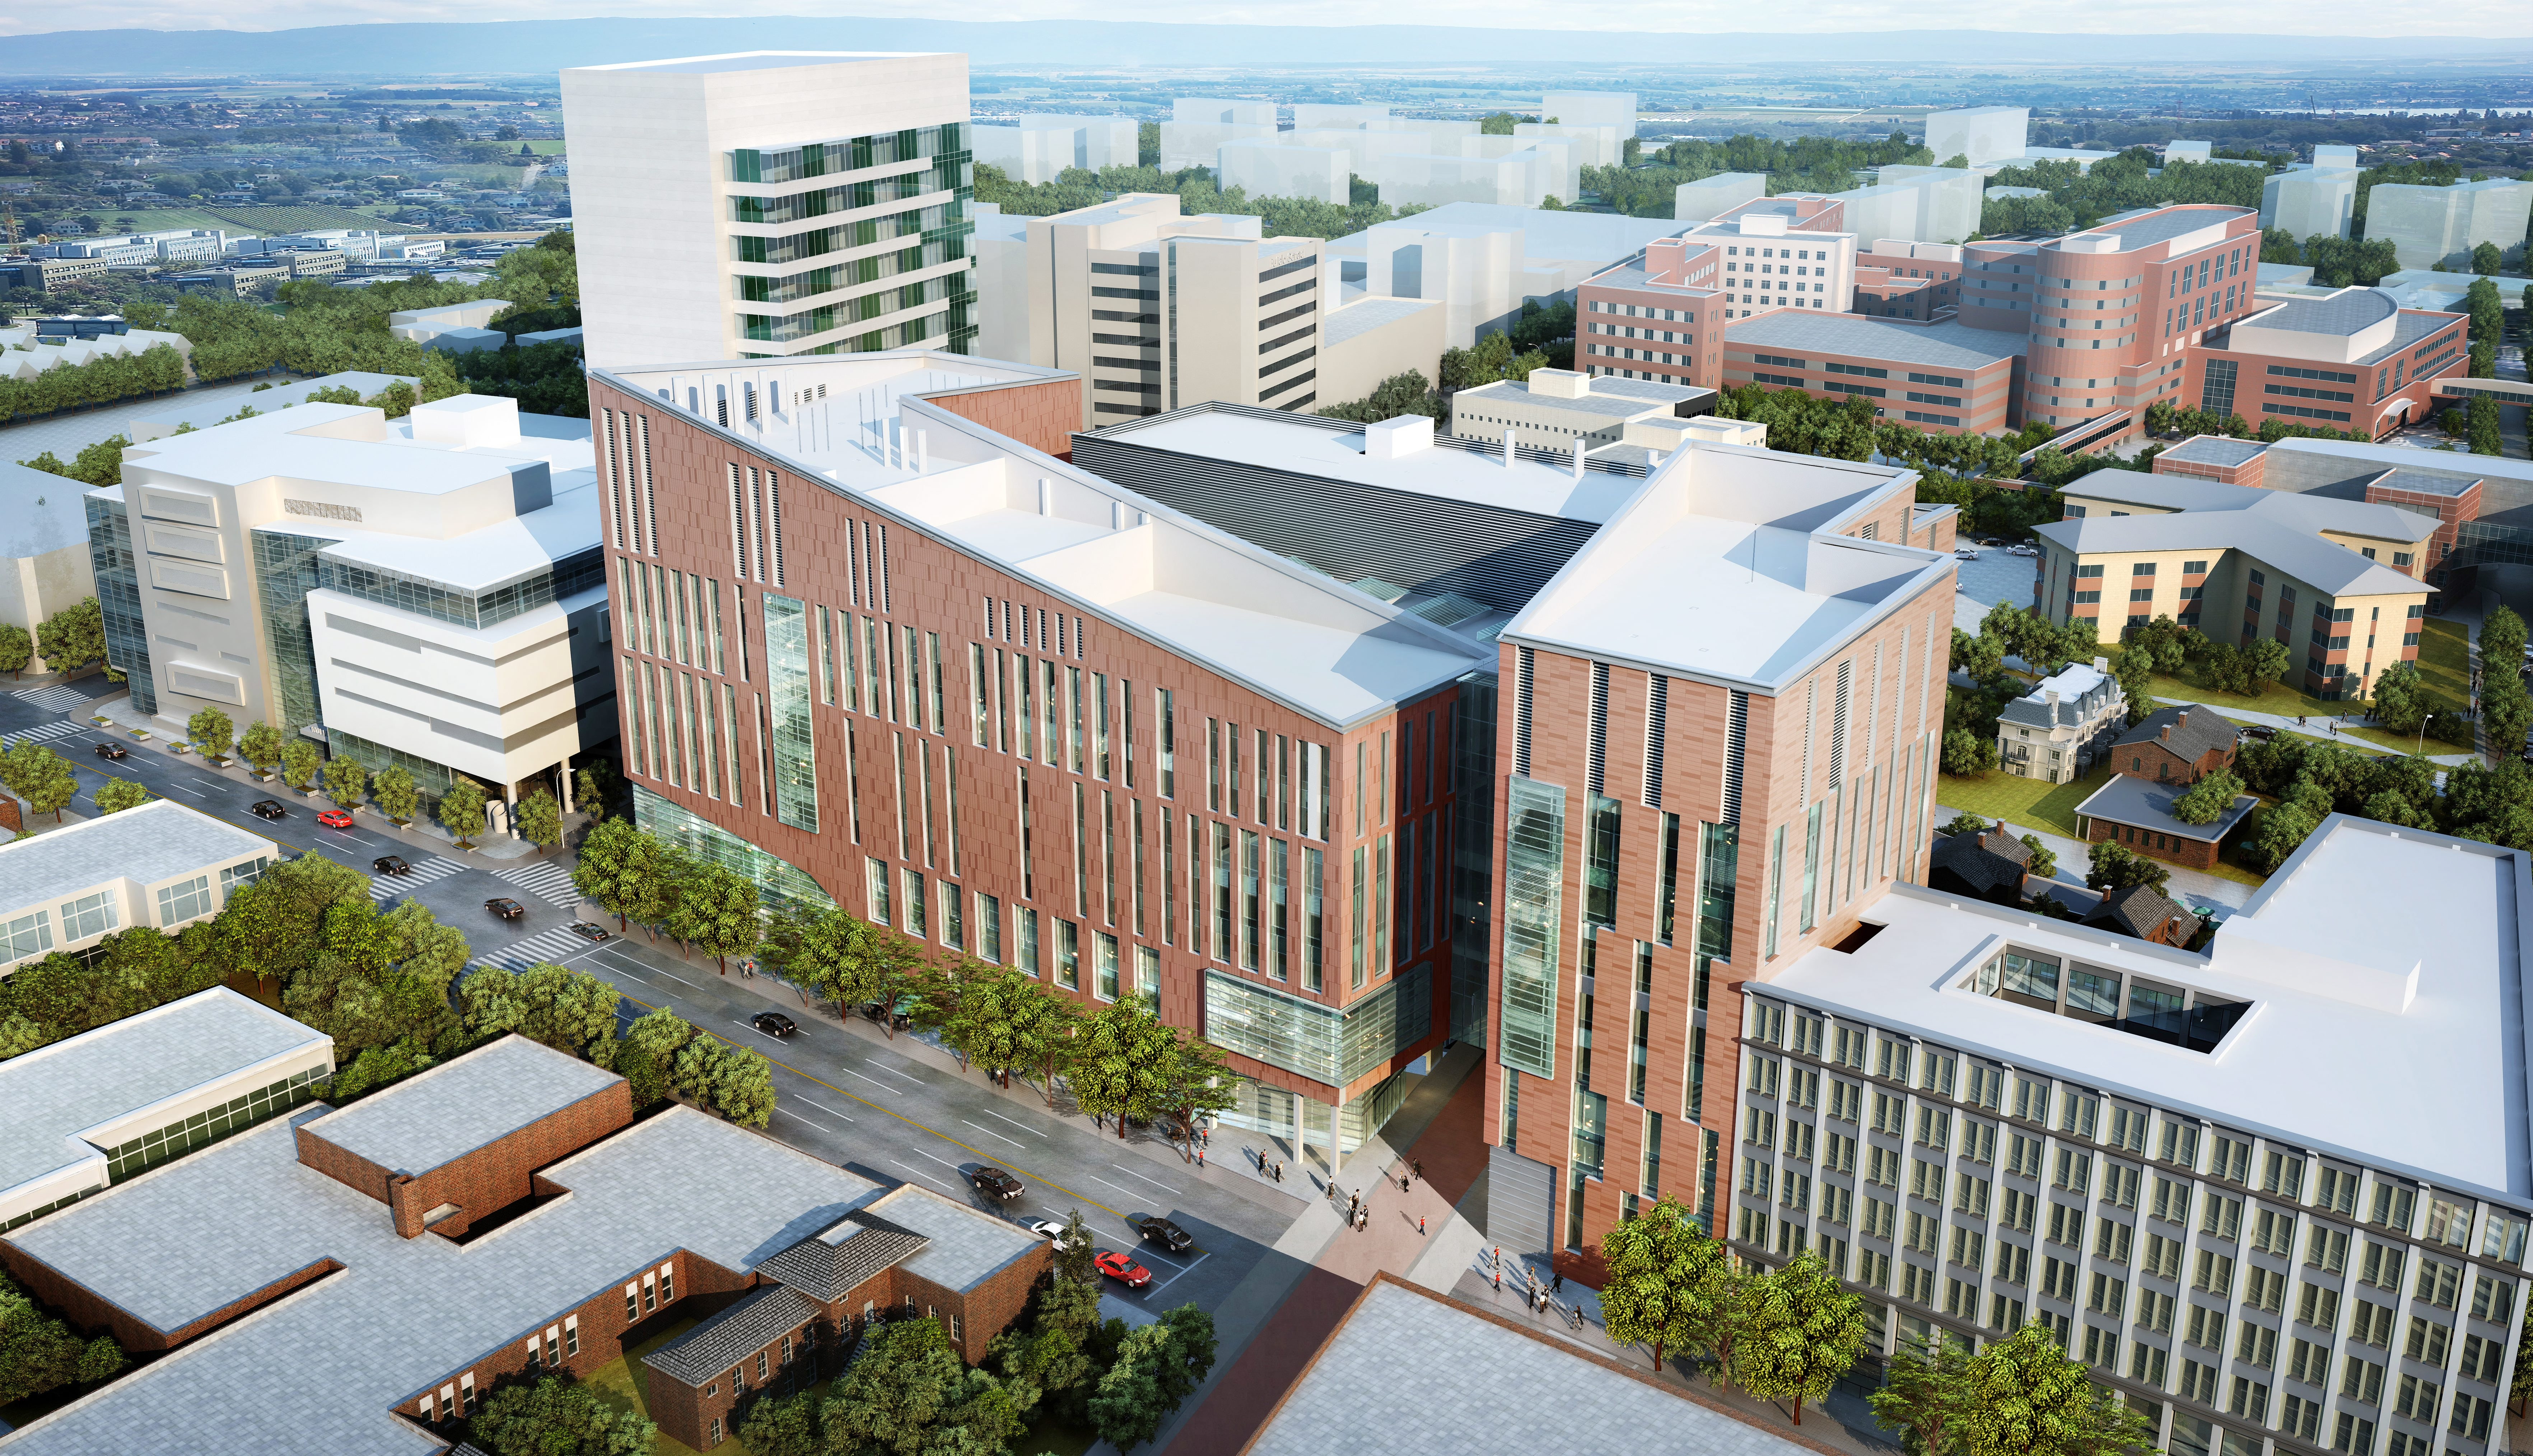 An architect's rendering of the new UB Medical School design.